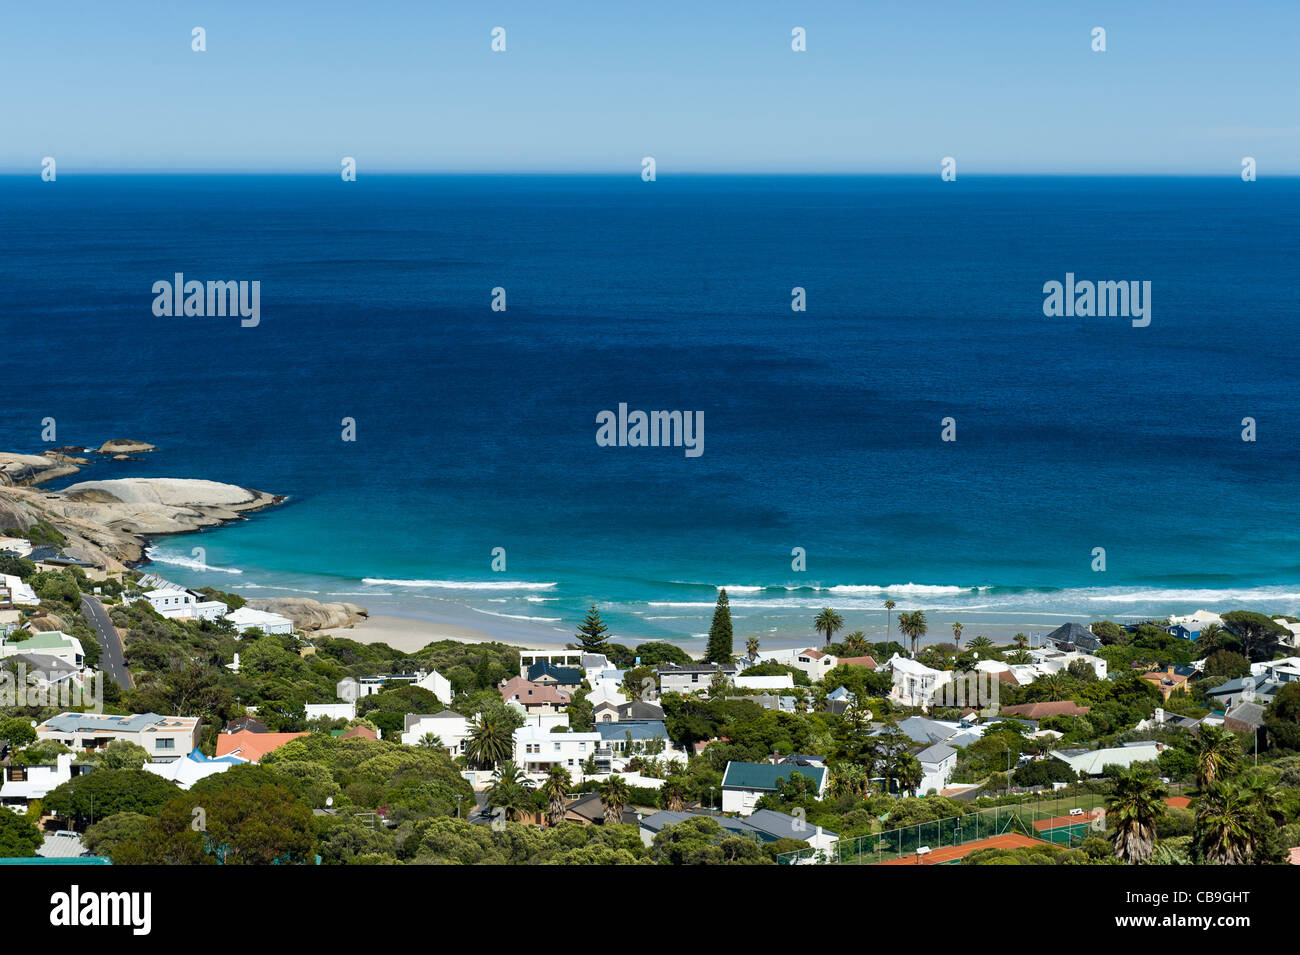 Llandudno bay and residential area south of Cape Town South Africa - Stock Image